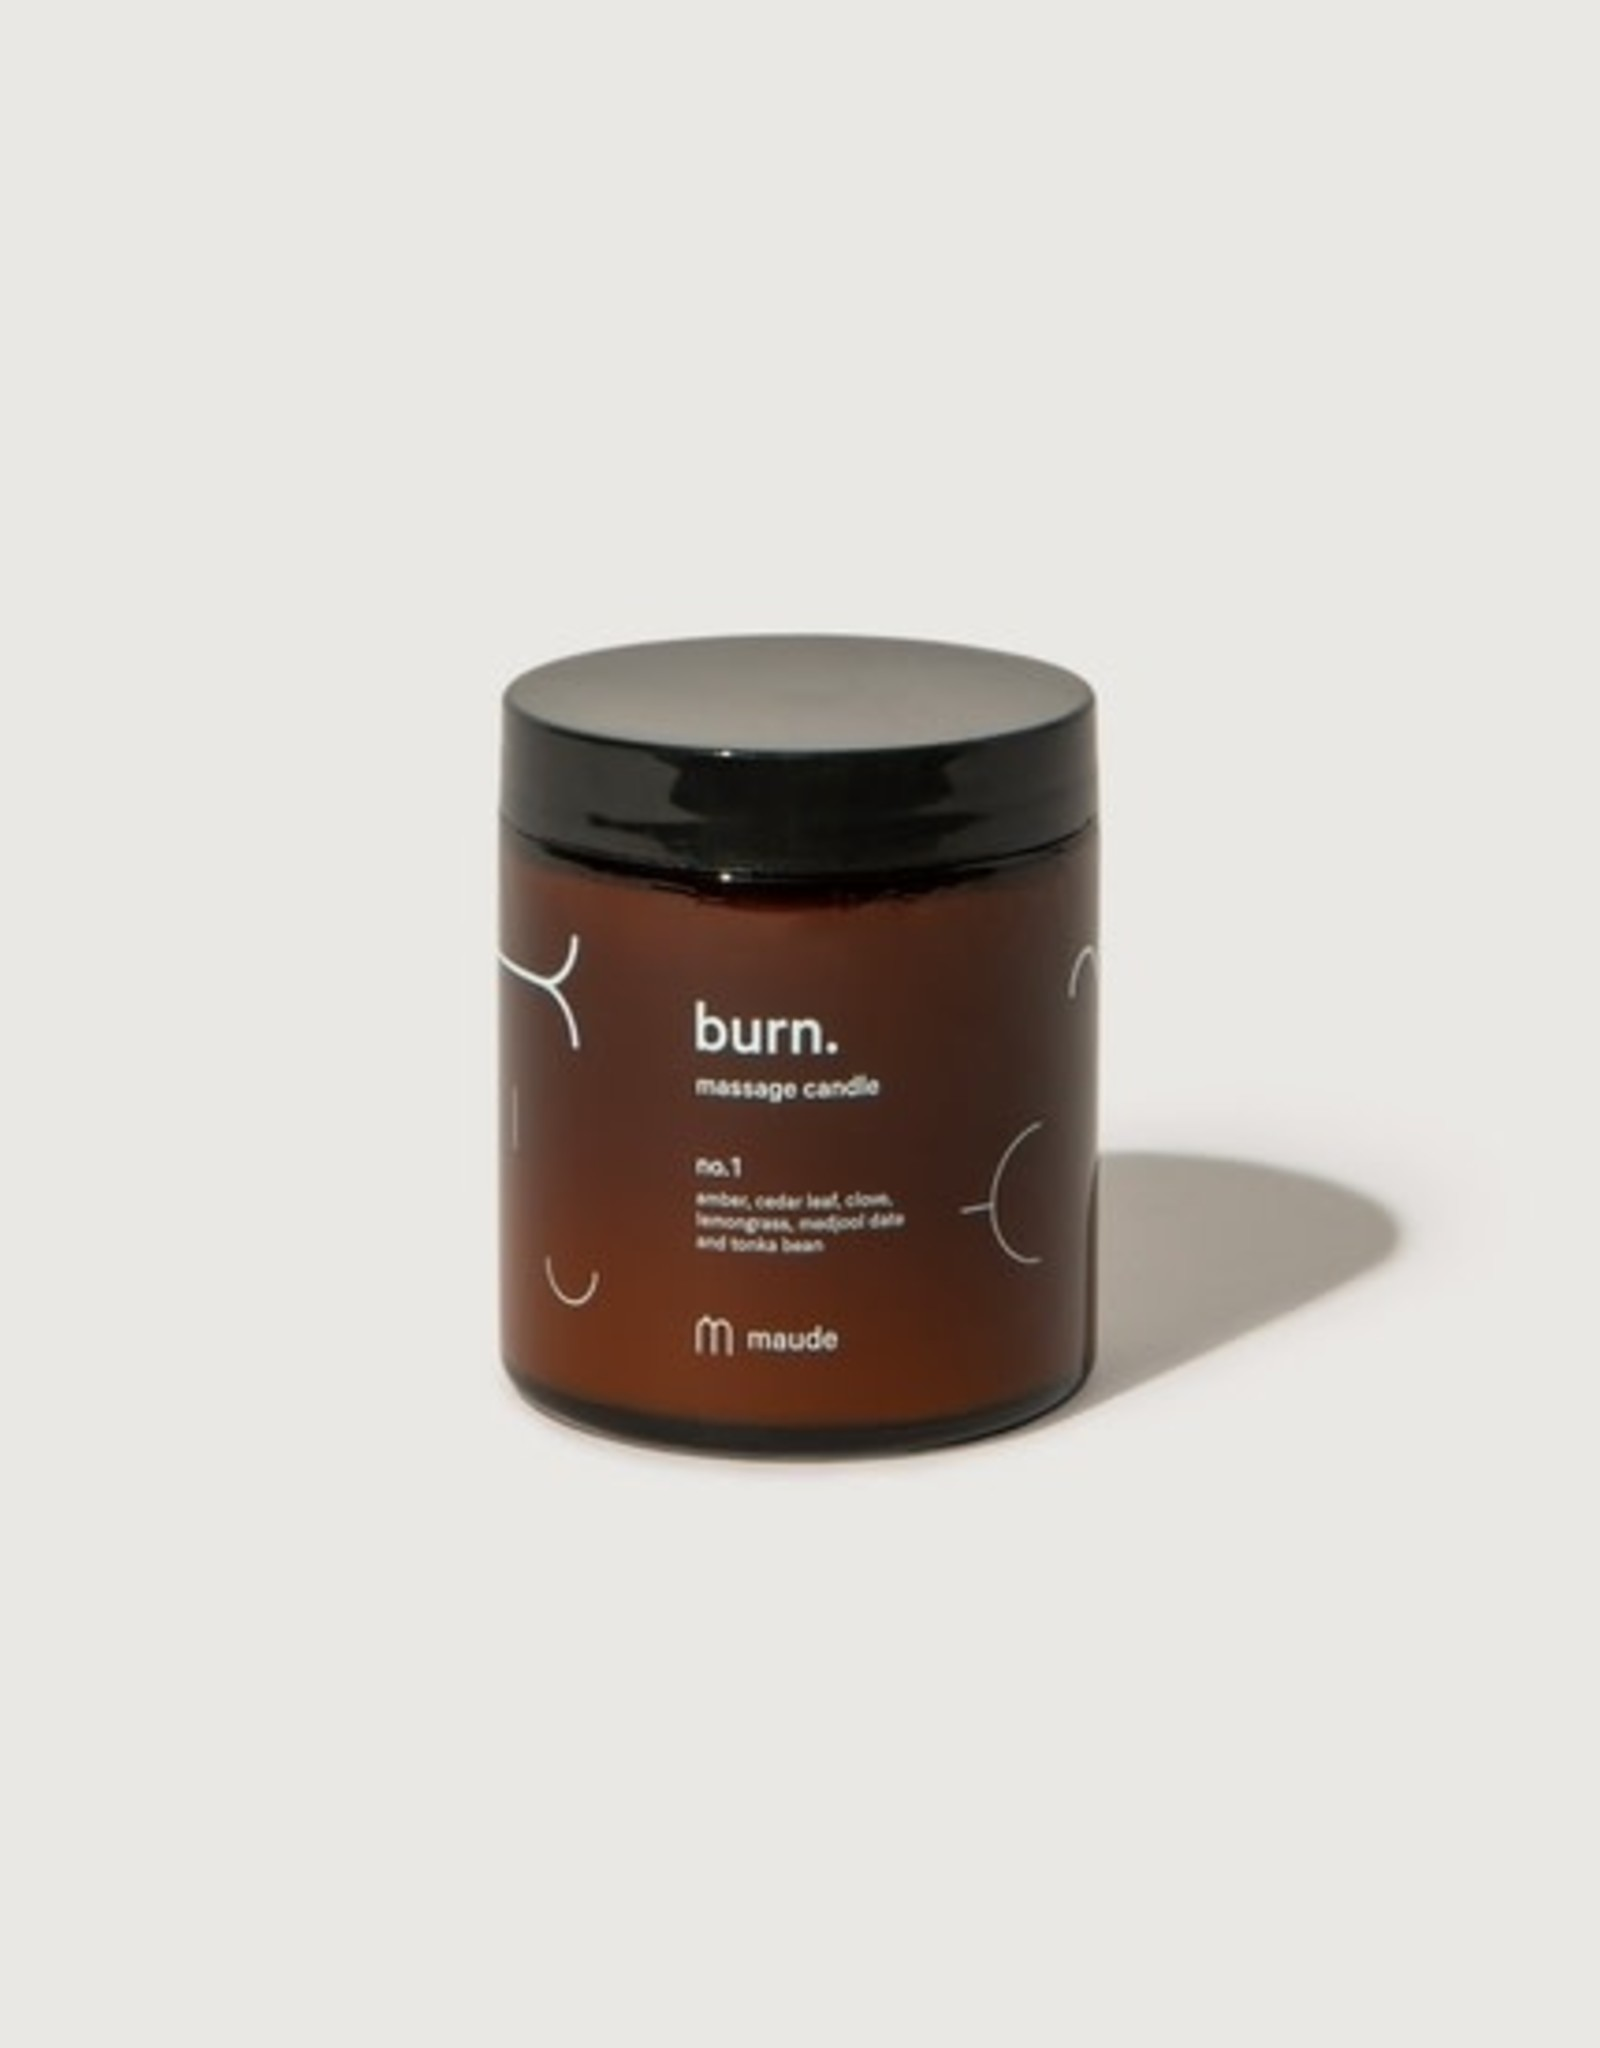 Maude Burn Massage Candle no. 1